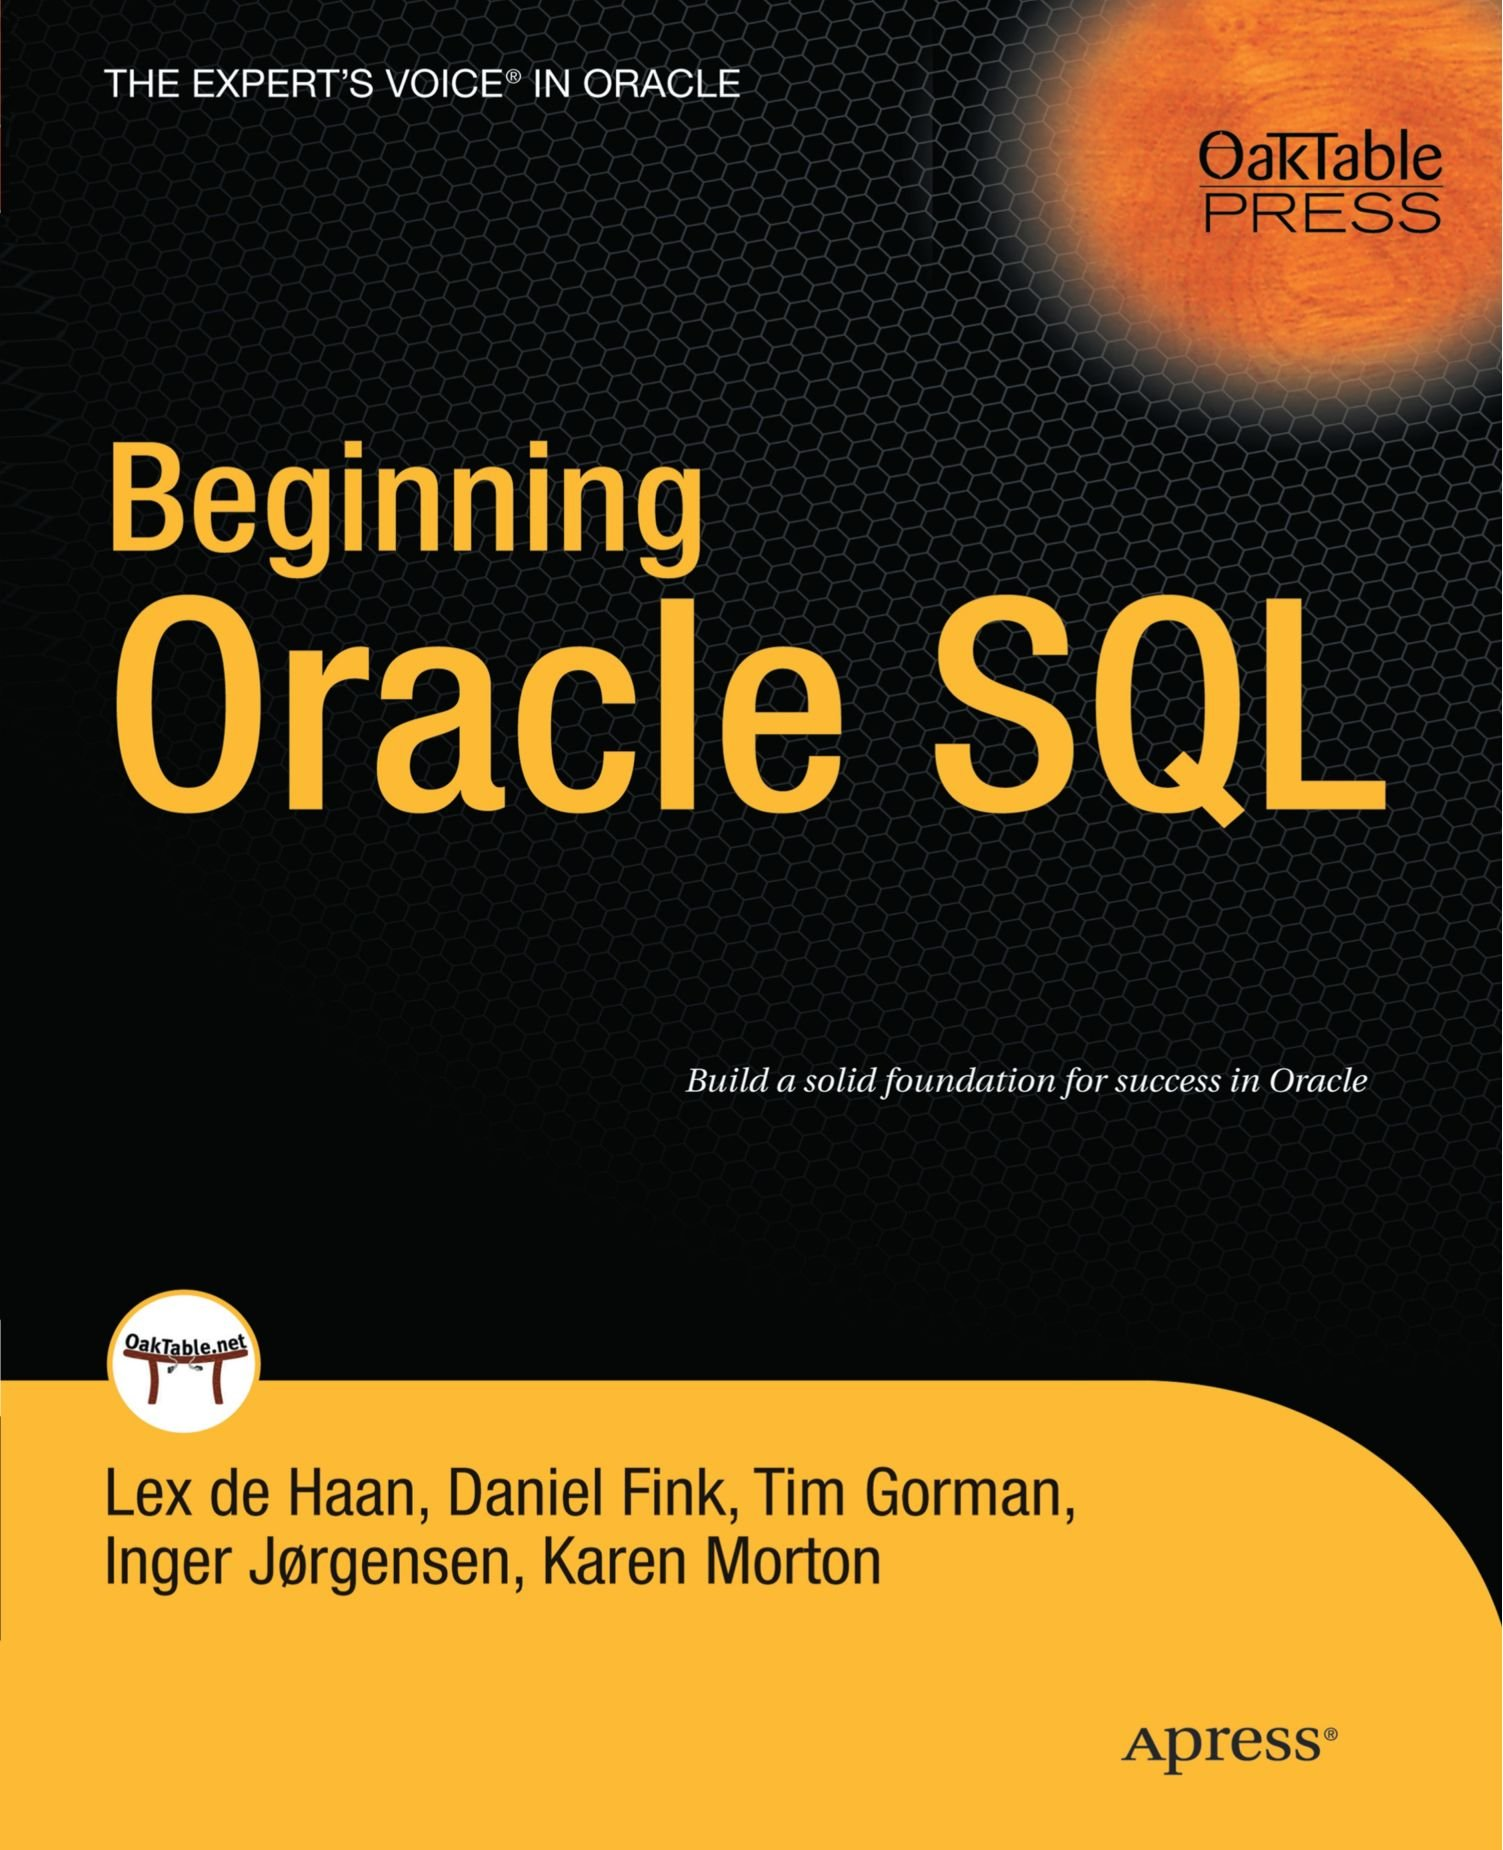 Beginning Oracle SQL by Apress